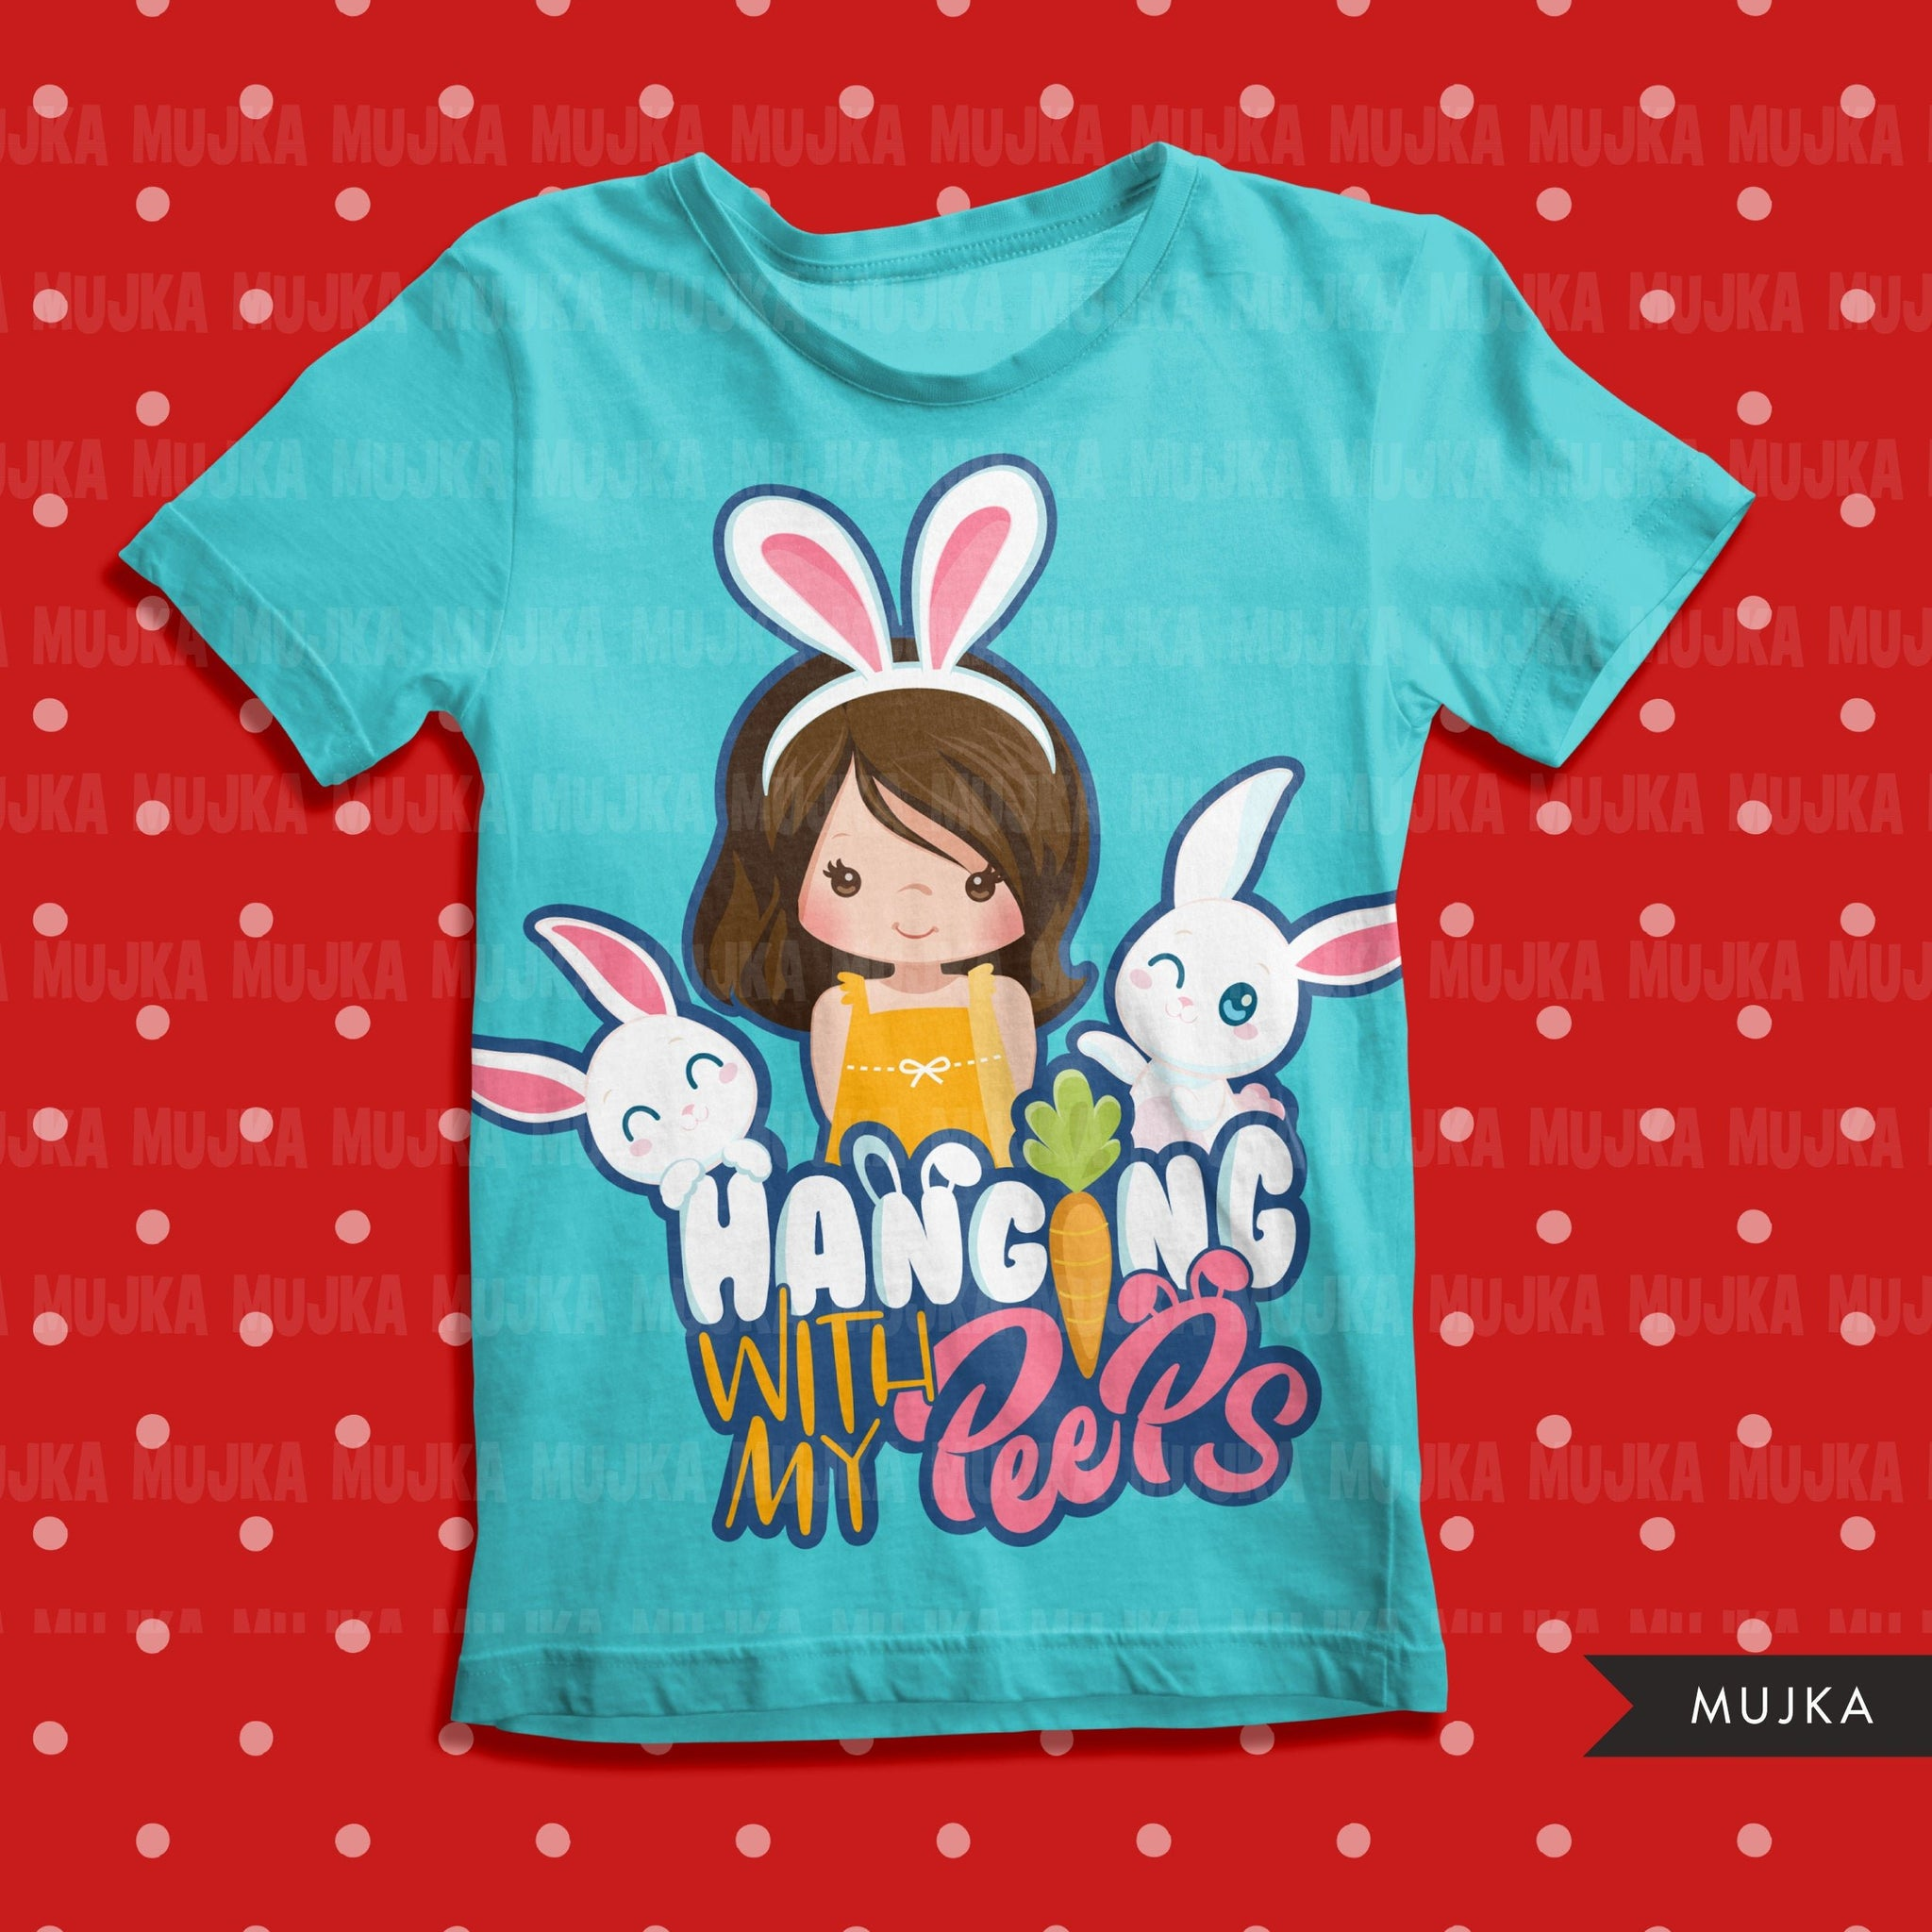 easter png digital hanging with my peeps htv sublimation image transfer clipart t-shirt graphics little girl